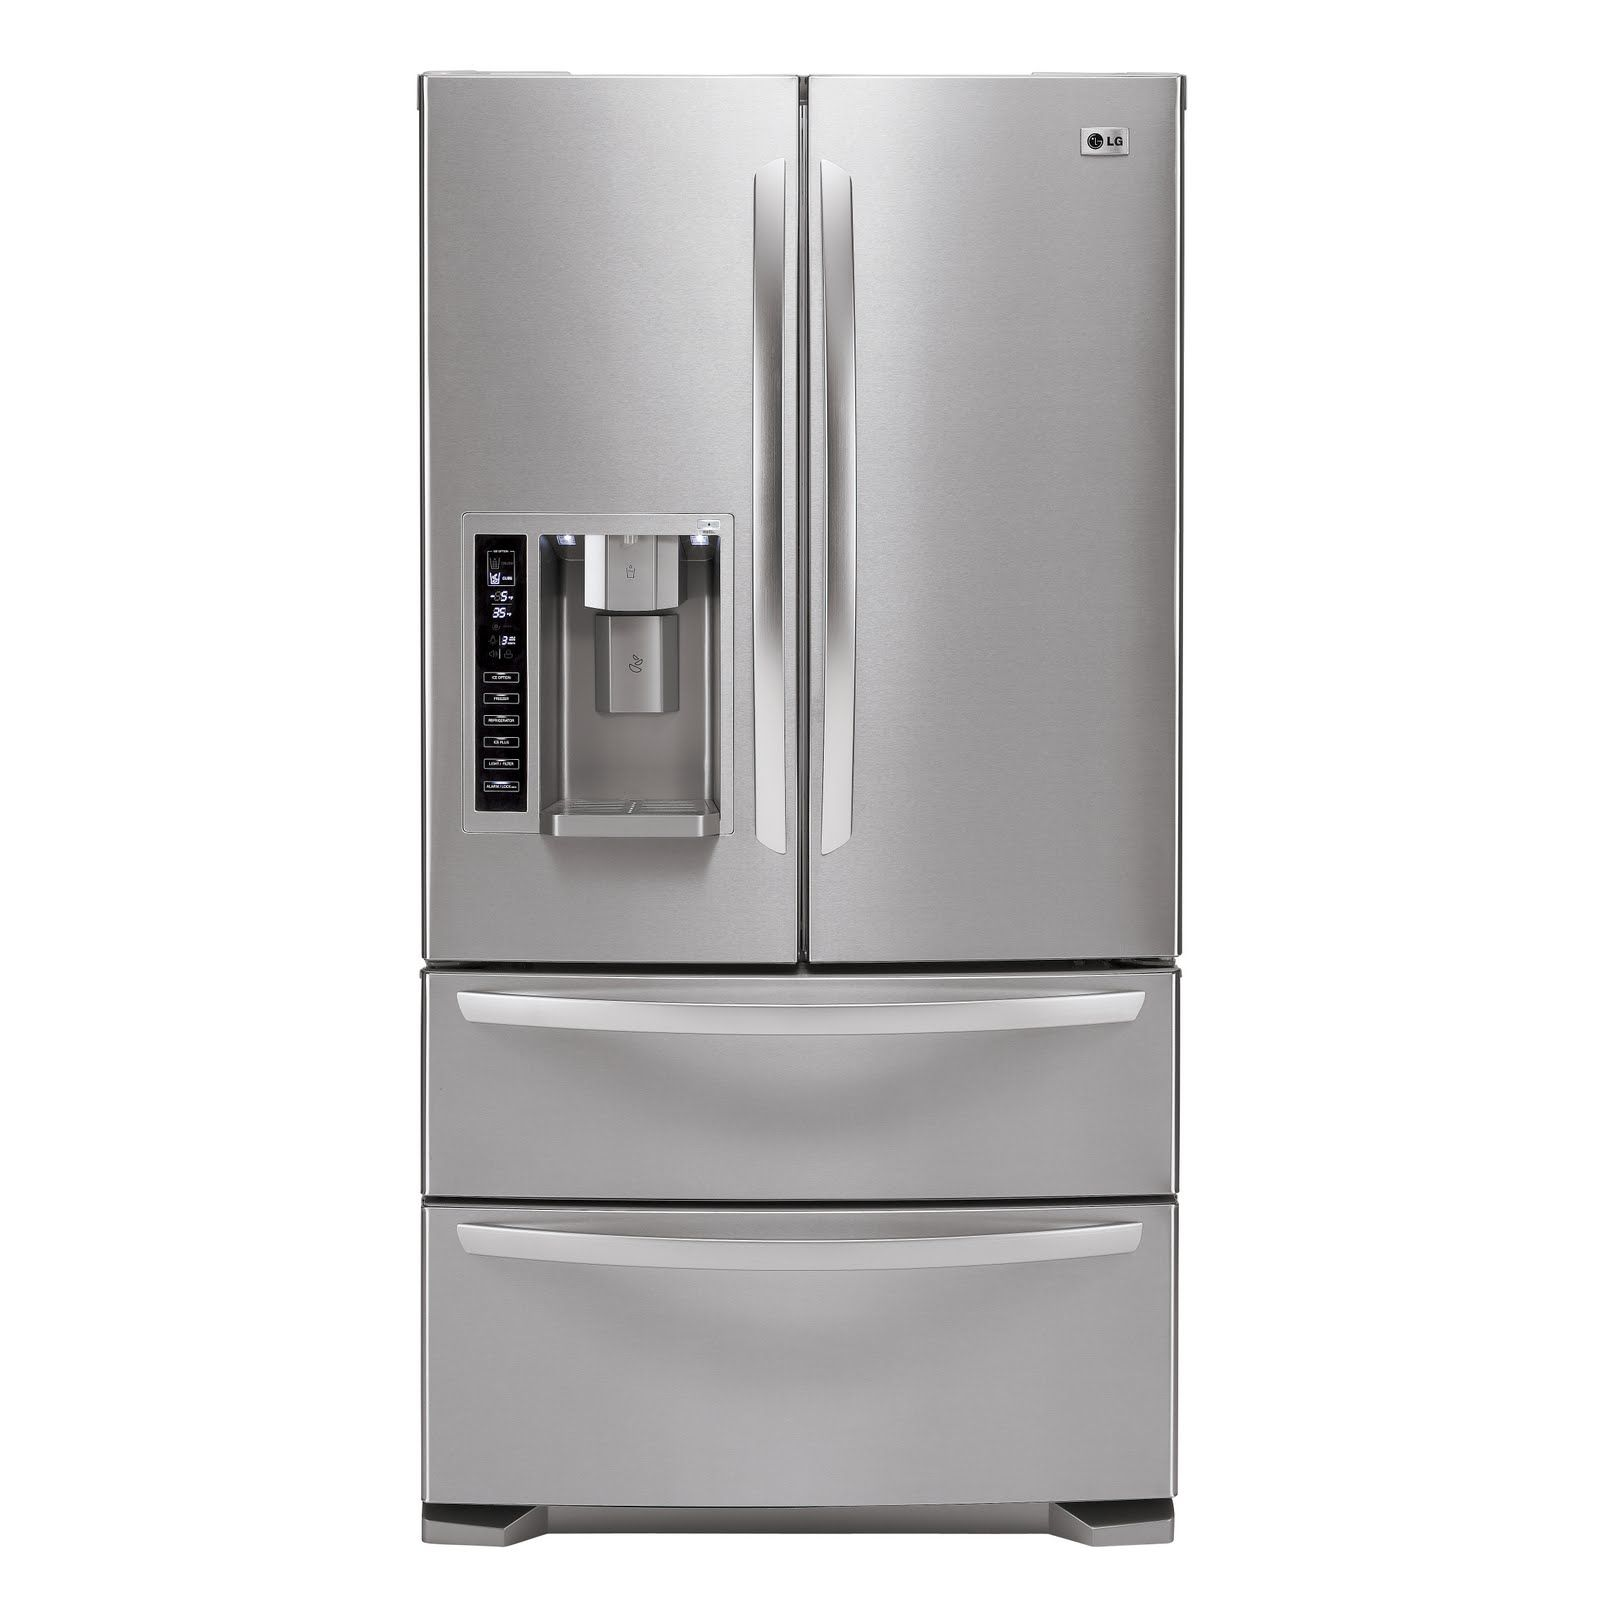 Determining Top 10 Refrigerators: Whirlpool Gold French